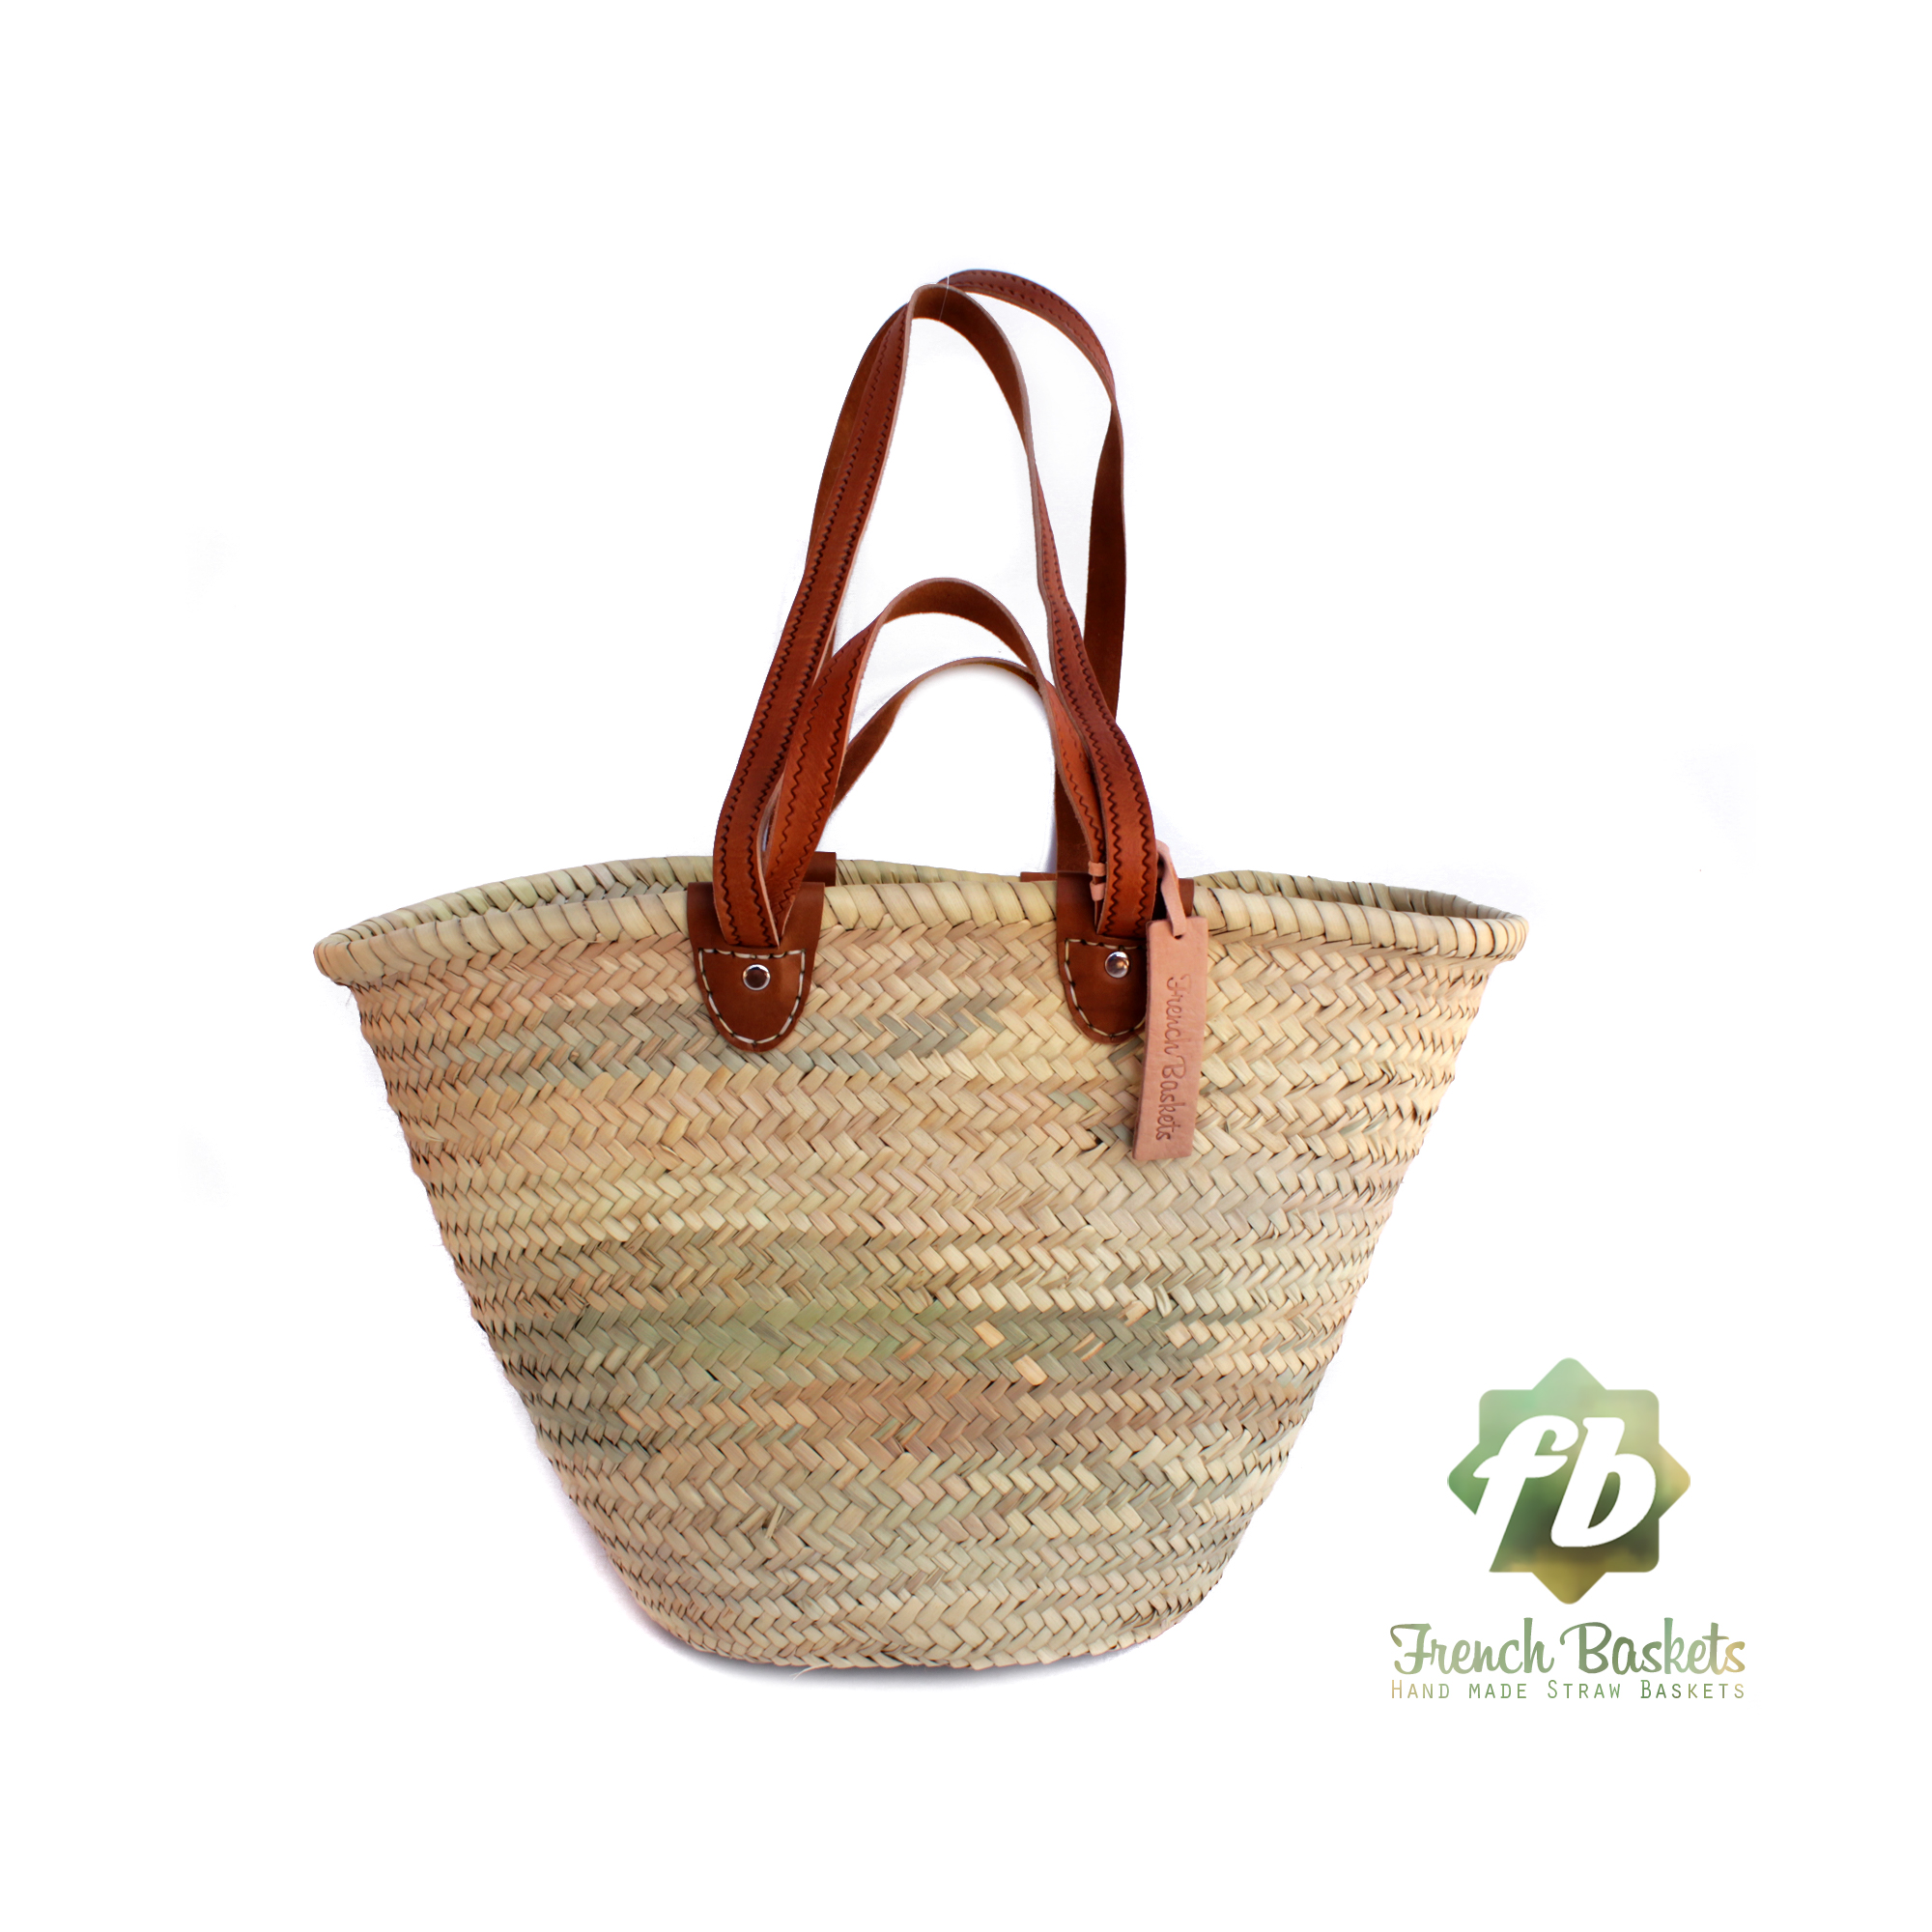 luxury straw French Baskets long Flat Leather Handle